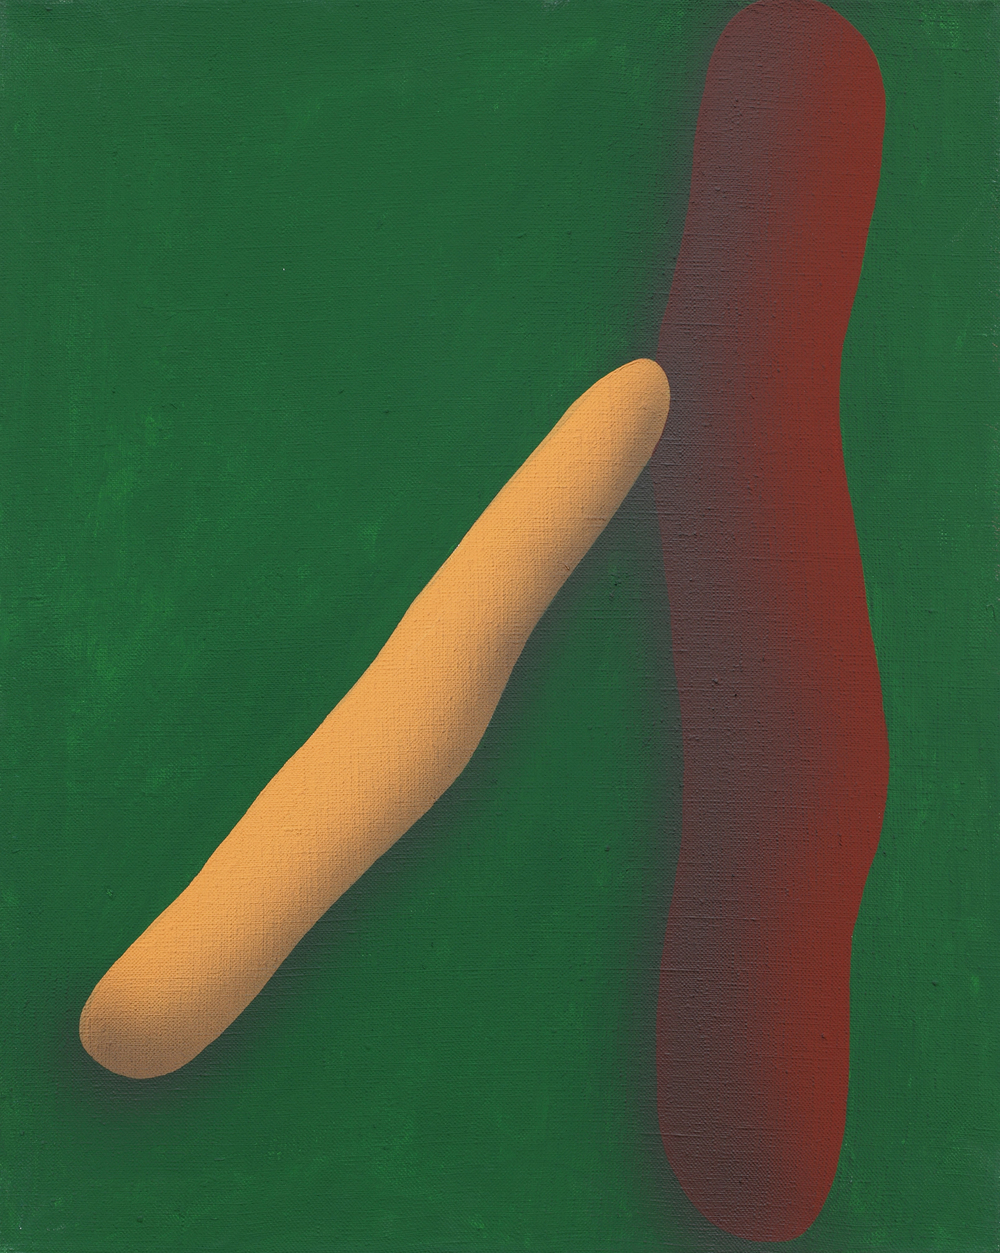 Elementary touching lines XII. 2010, acrylic on canvas, 50 x 40 cm